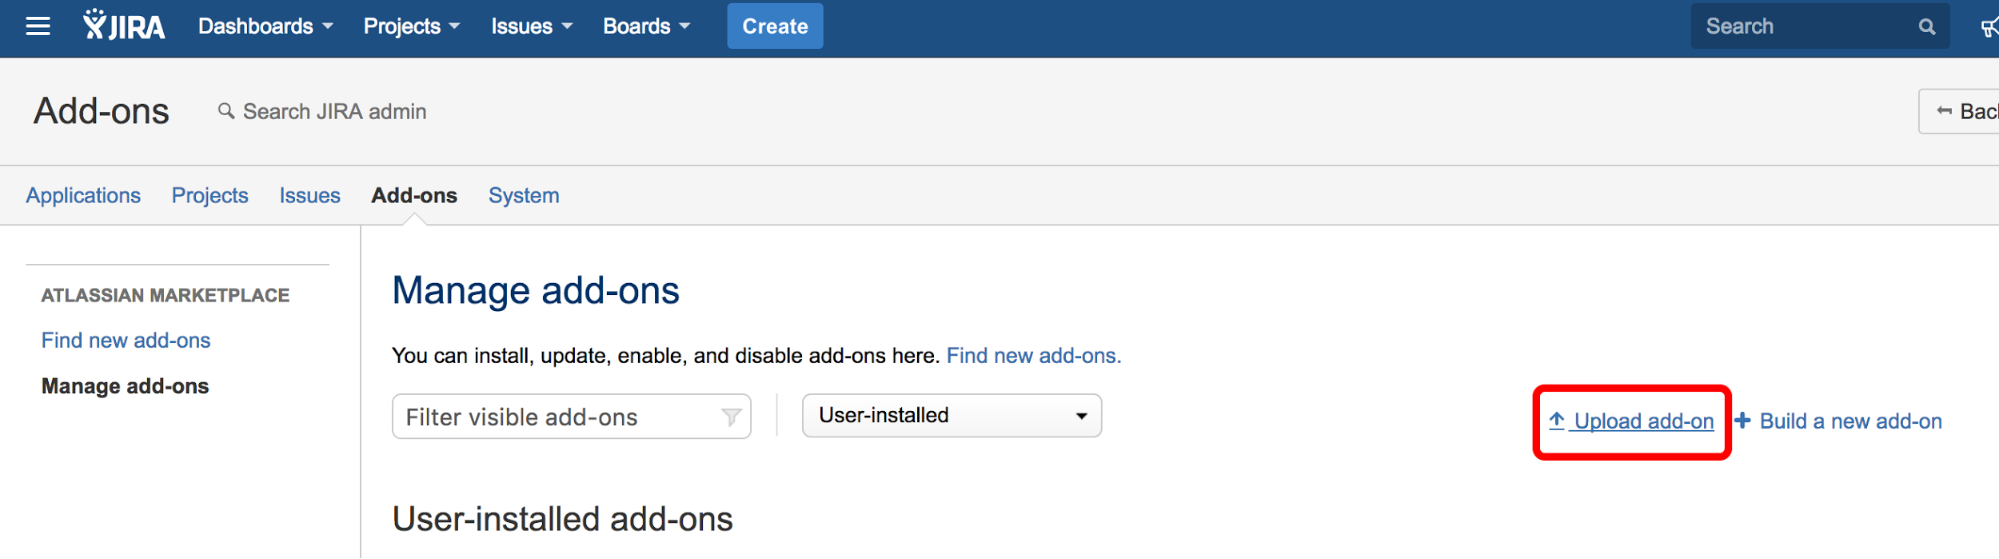 jira_cloud_manage_add-ons.png